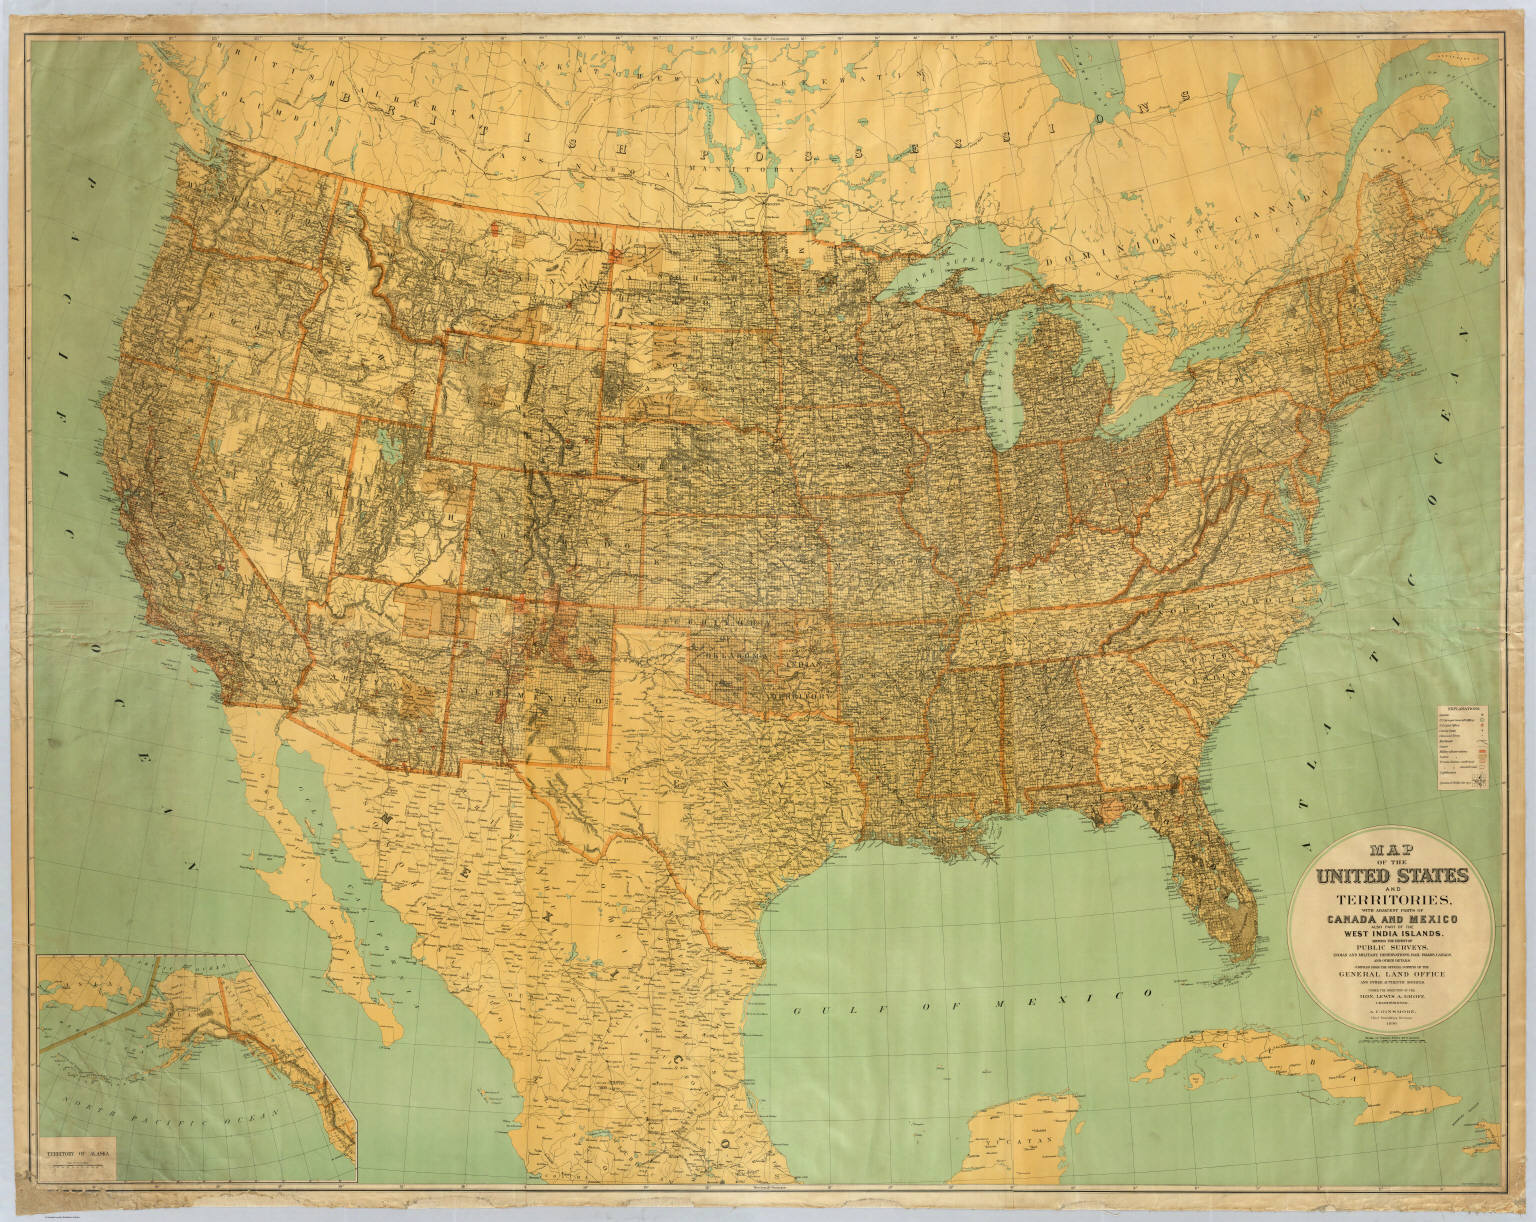 United States and territories David Rumsey Historical Map